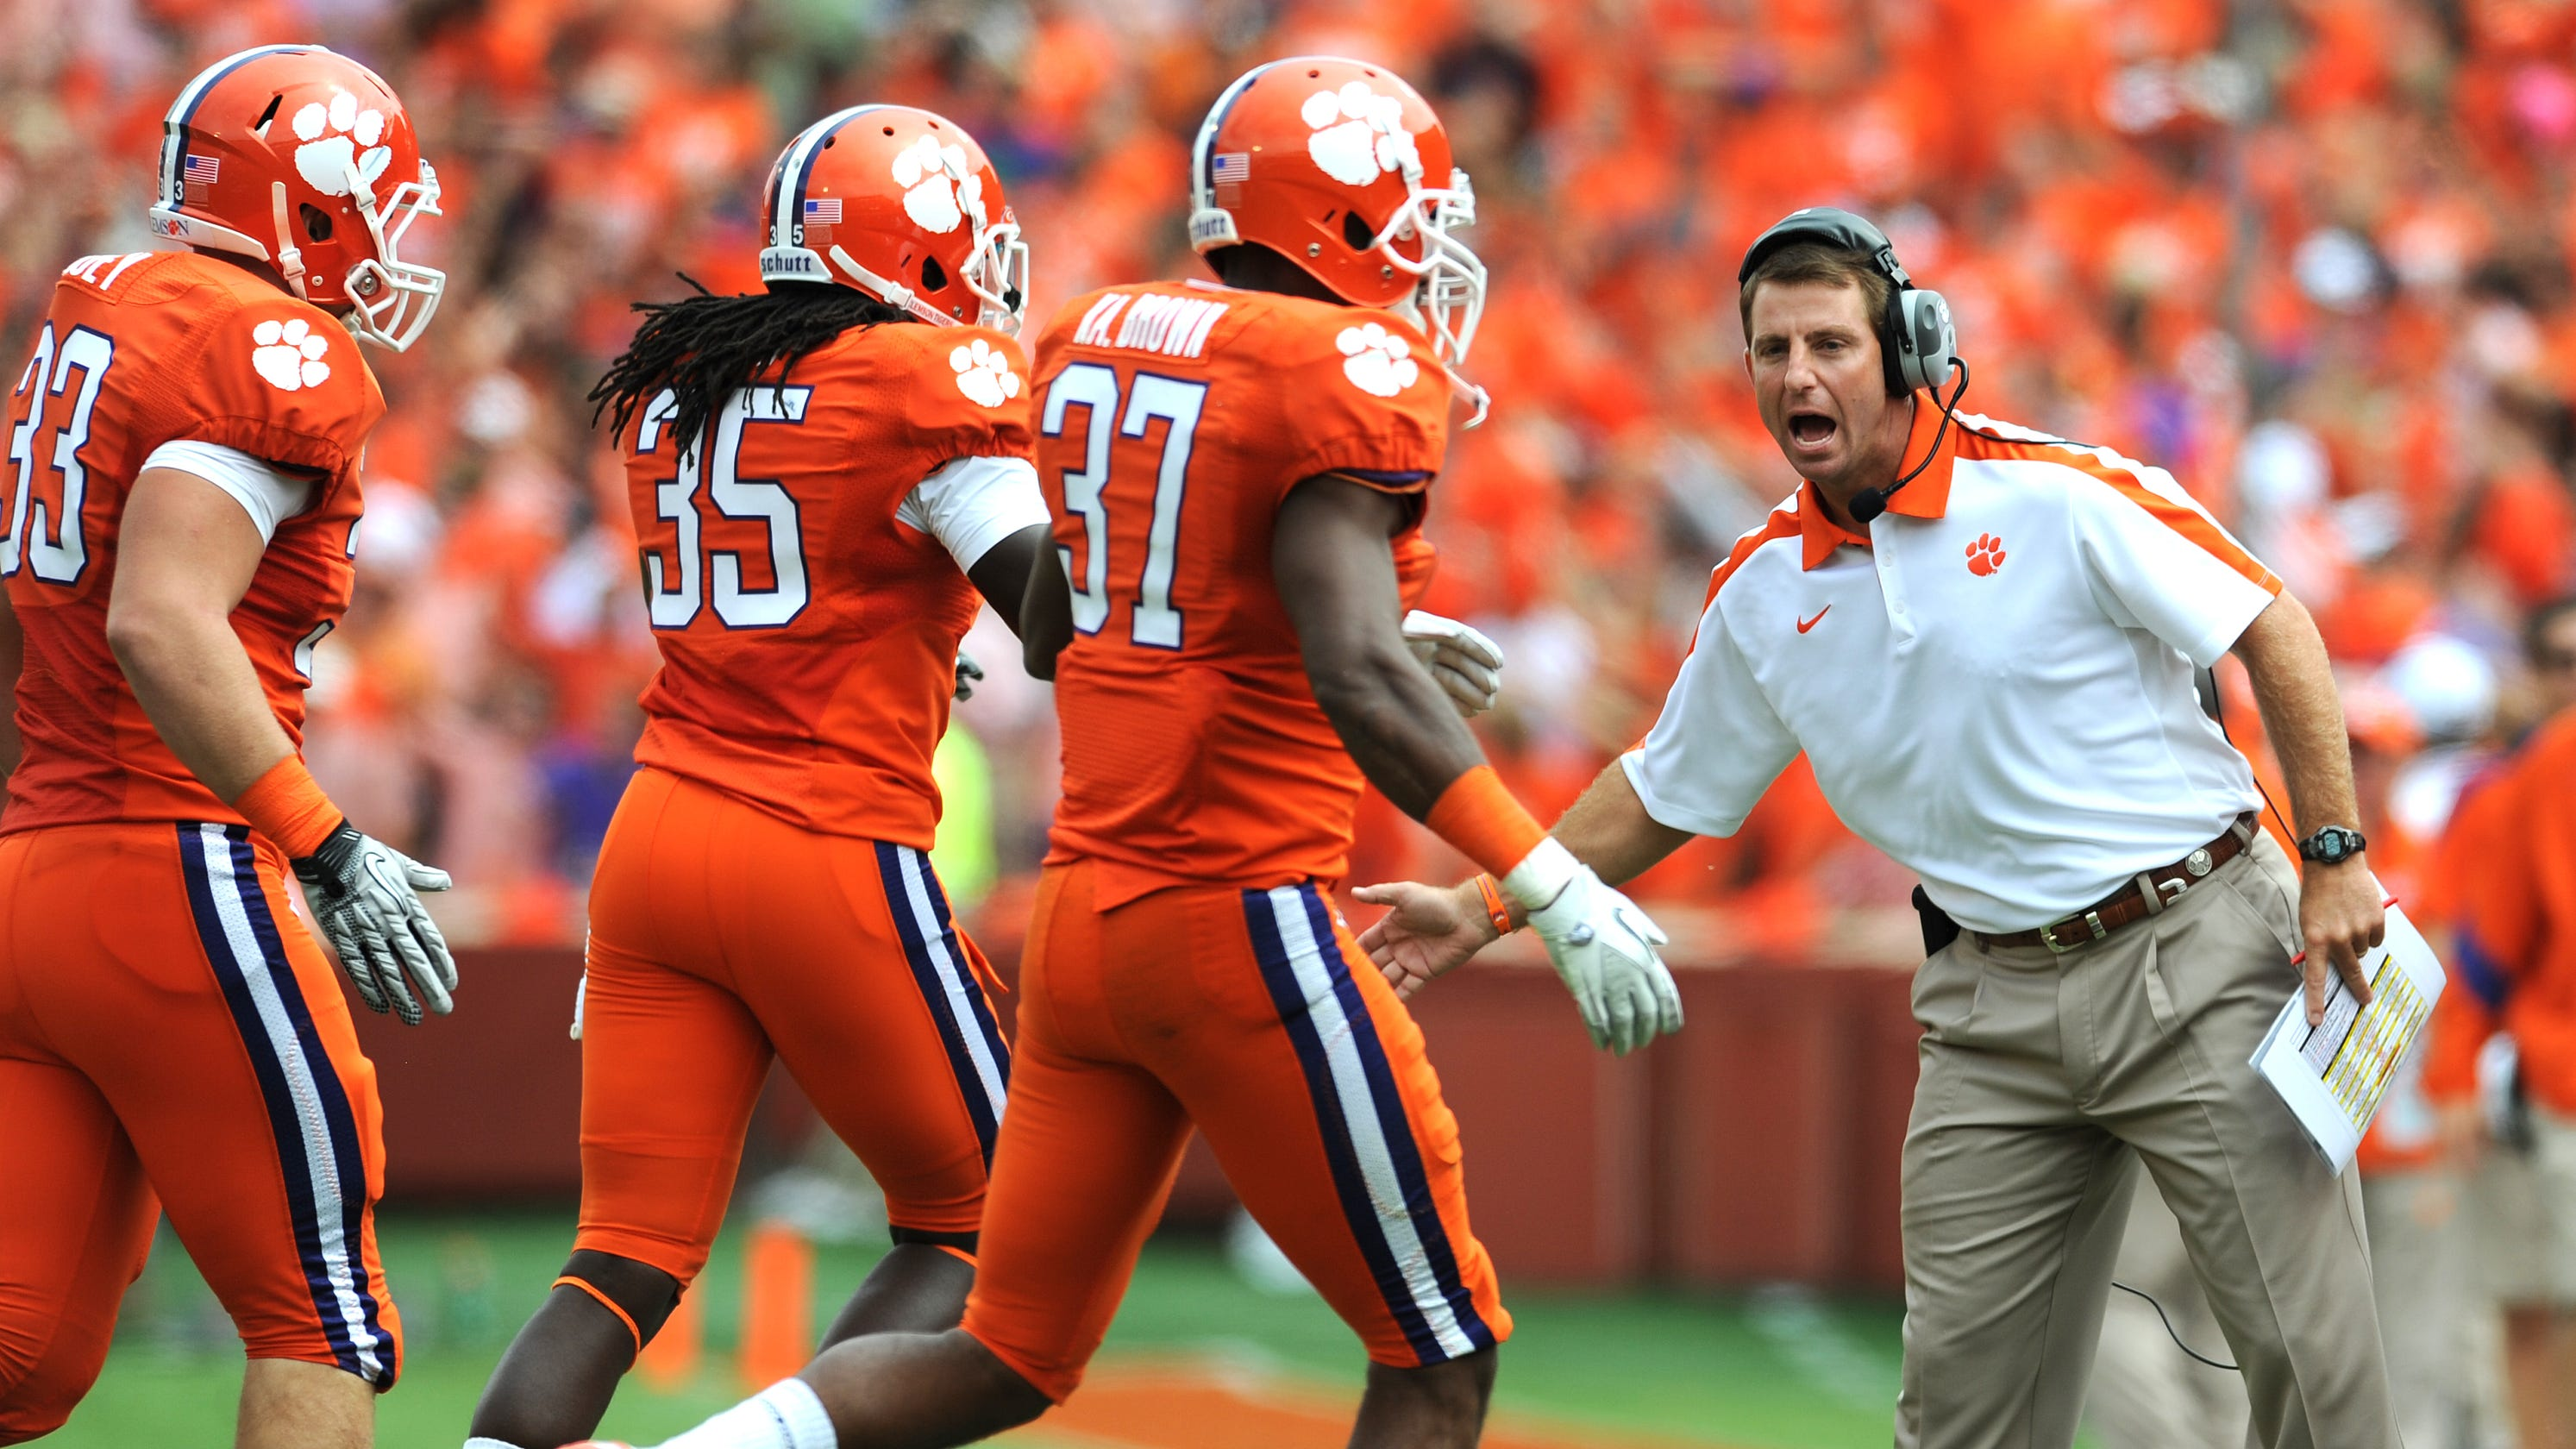 Stuck inside? Here are the Top 10 games of the Dabo Swinney era to enjoy all over again